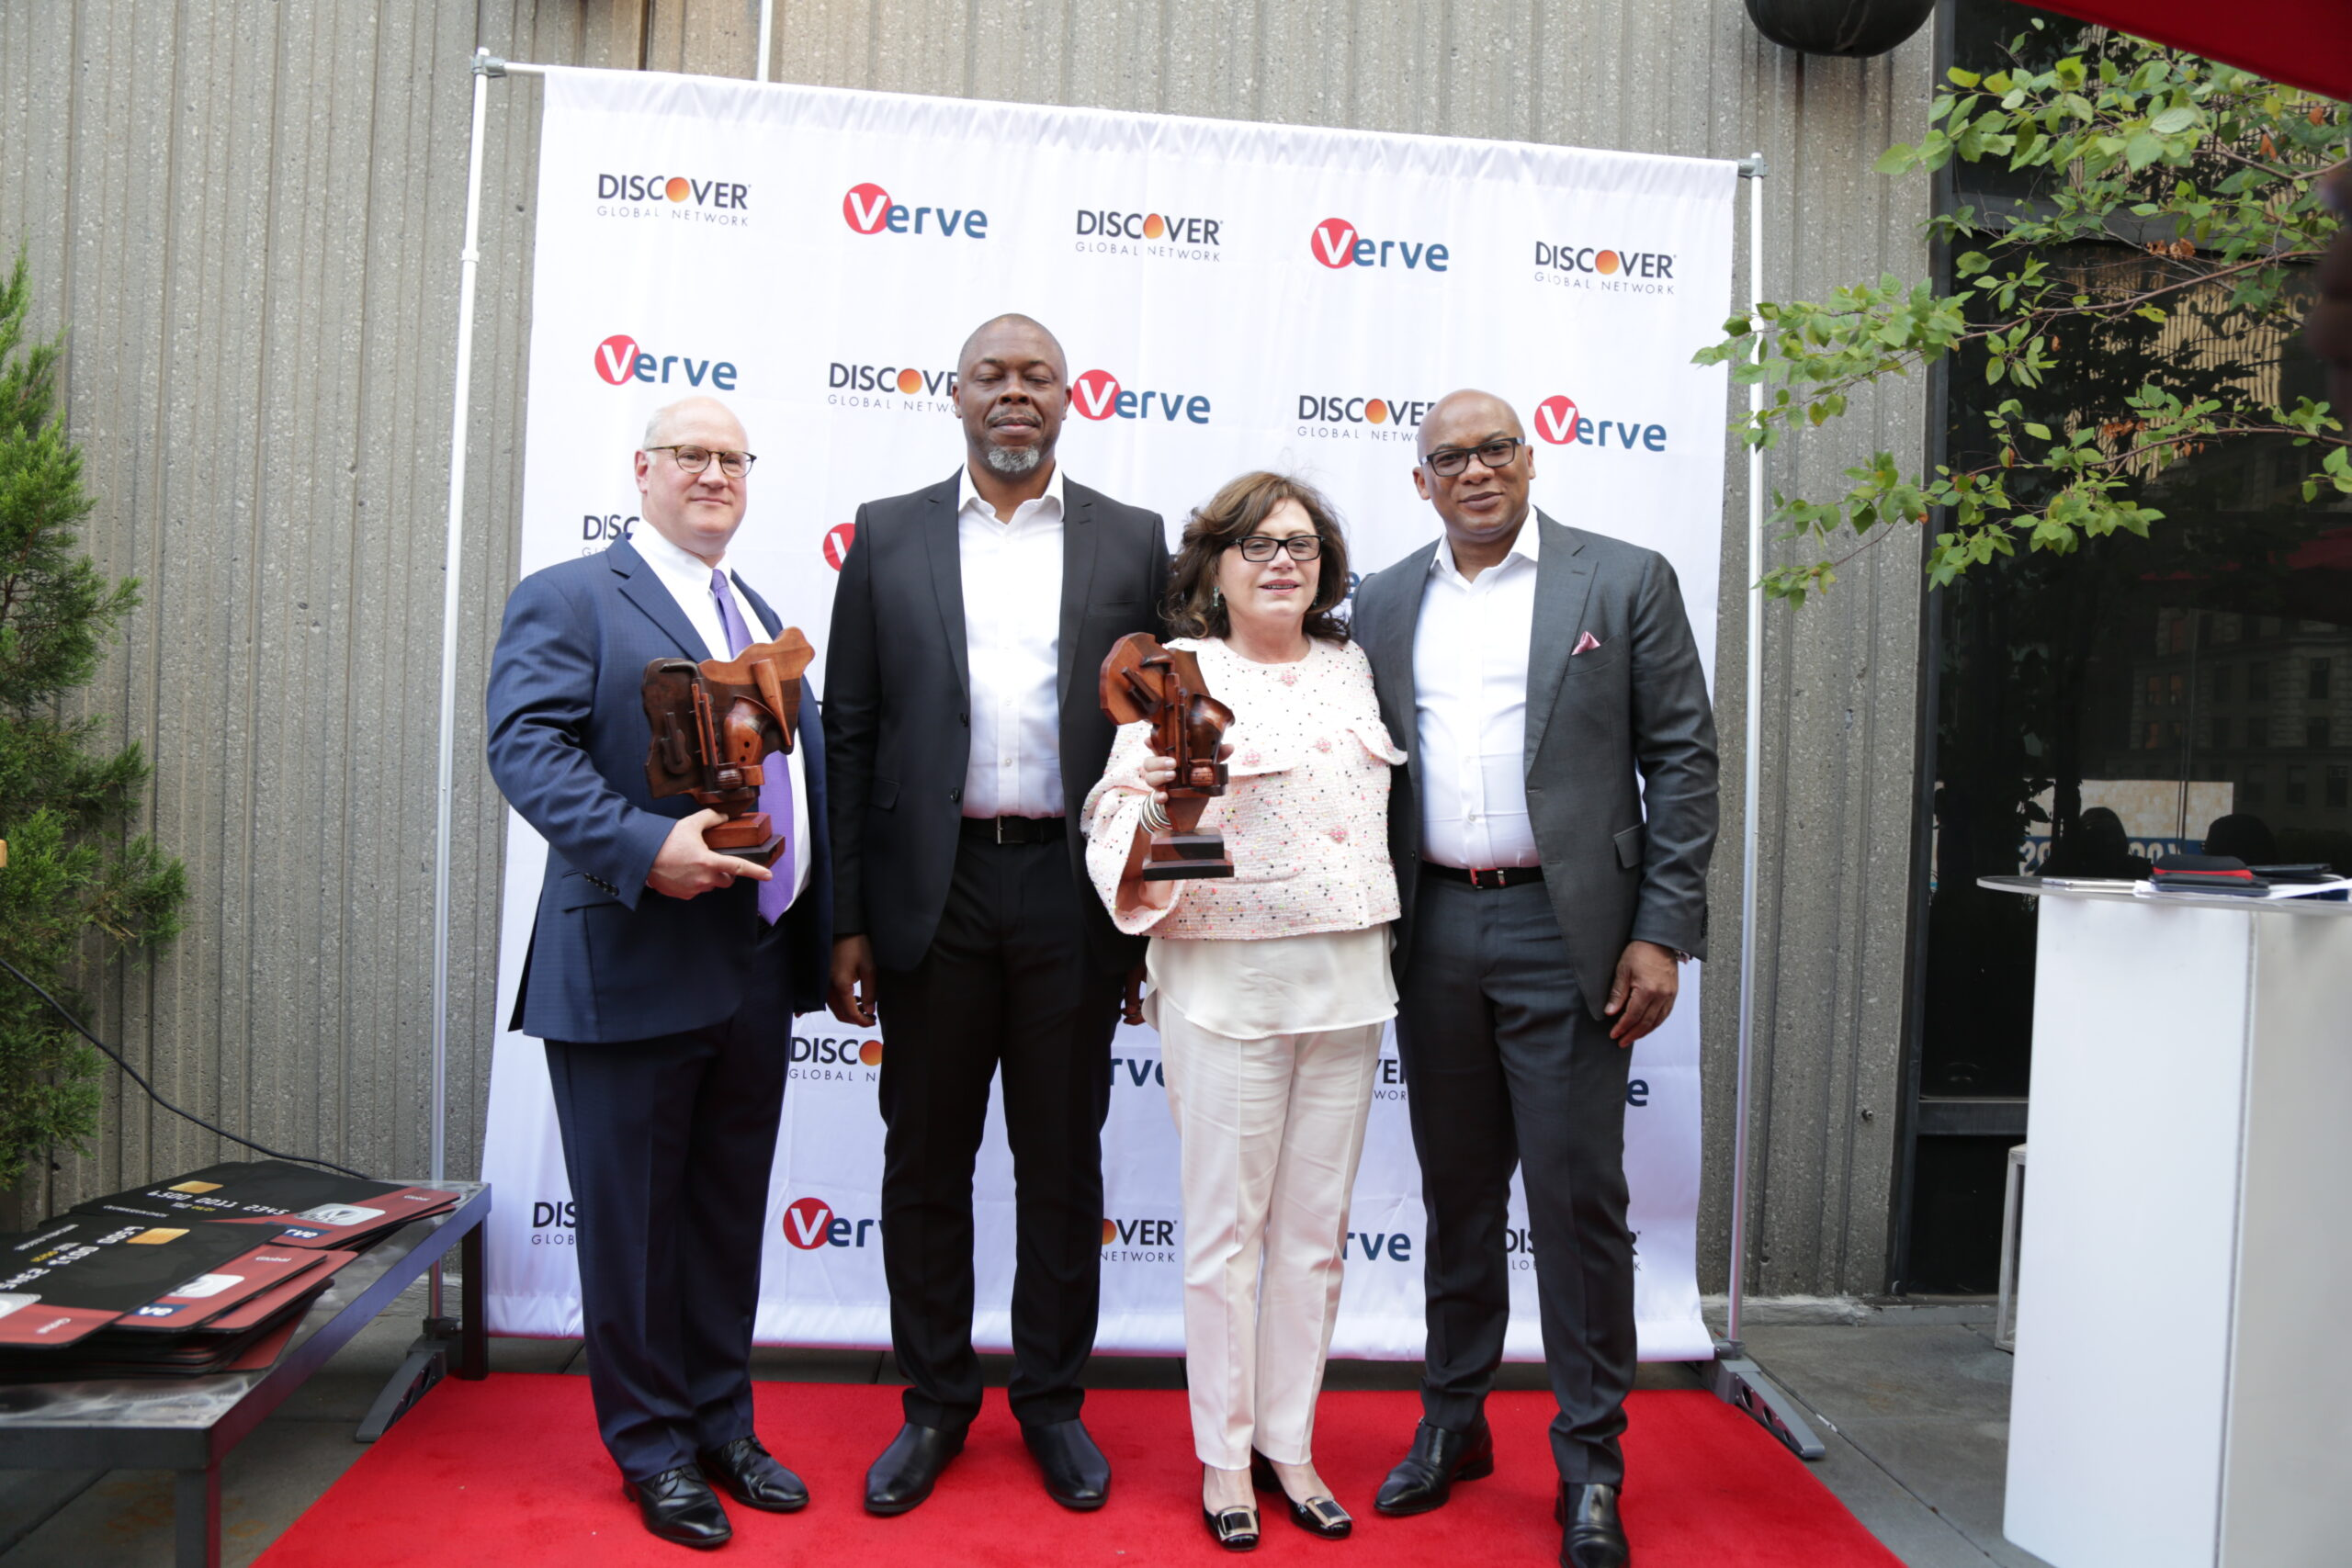 L-R: Joseph Hurley, Snr. Vice President, Payment Services, Discover Financial Services, Mike Ogbalu 111, Divisional CEO, Verve, Diane Offereins, Executive Vice President, Payment Services, Discover, and Mitchell Elegbe, Founder/GMD Interswitch Group, at the Verve Global Card Launch in New York, on Monday.